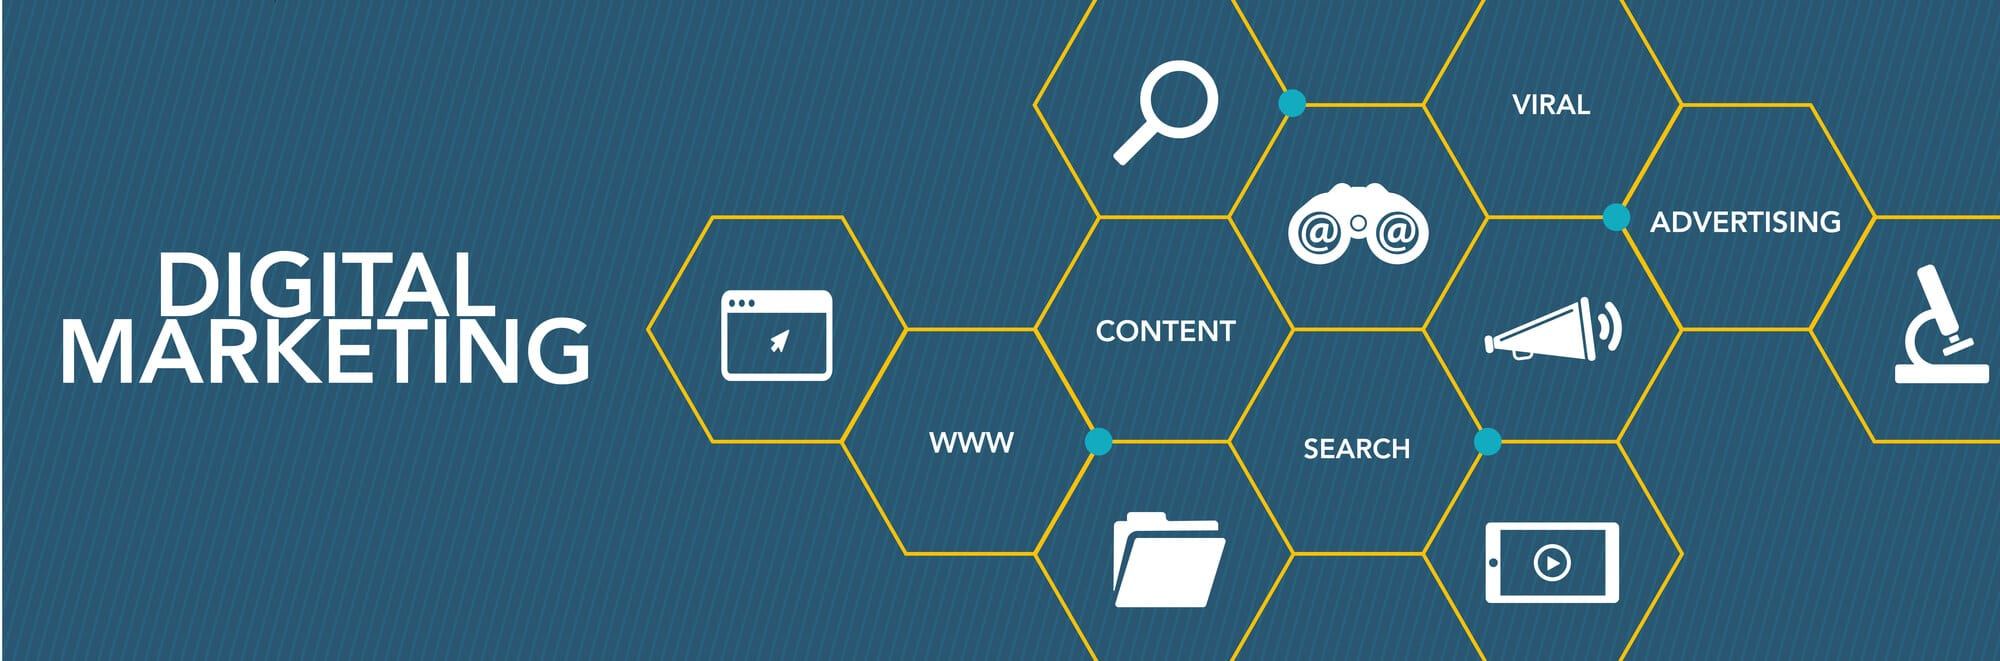 seo, web design and digital marketing agency in new orleans - Infintech Designs